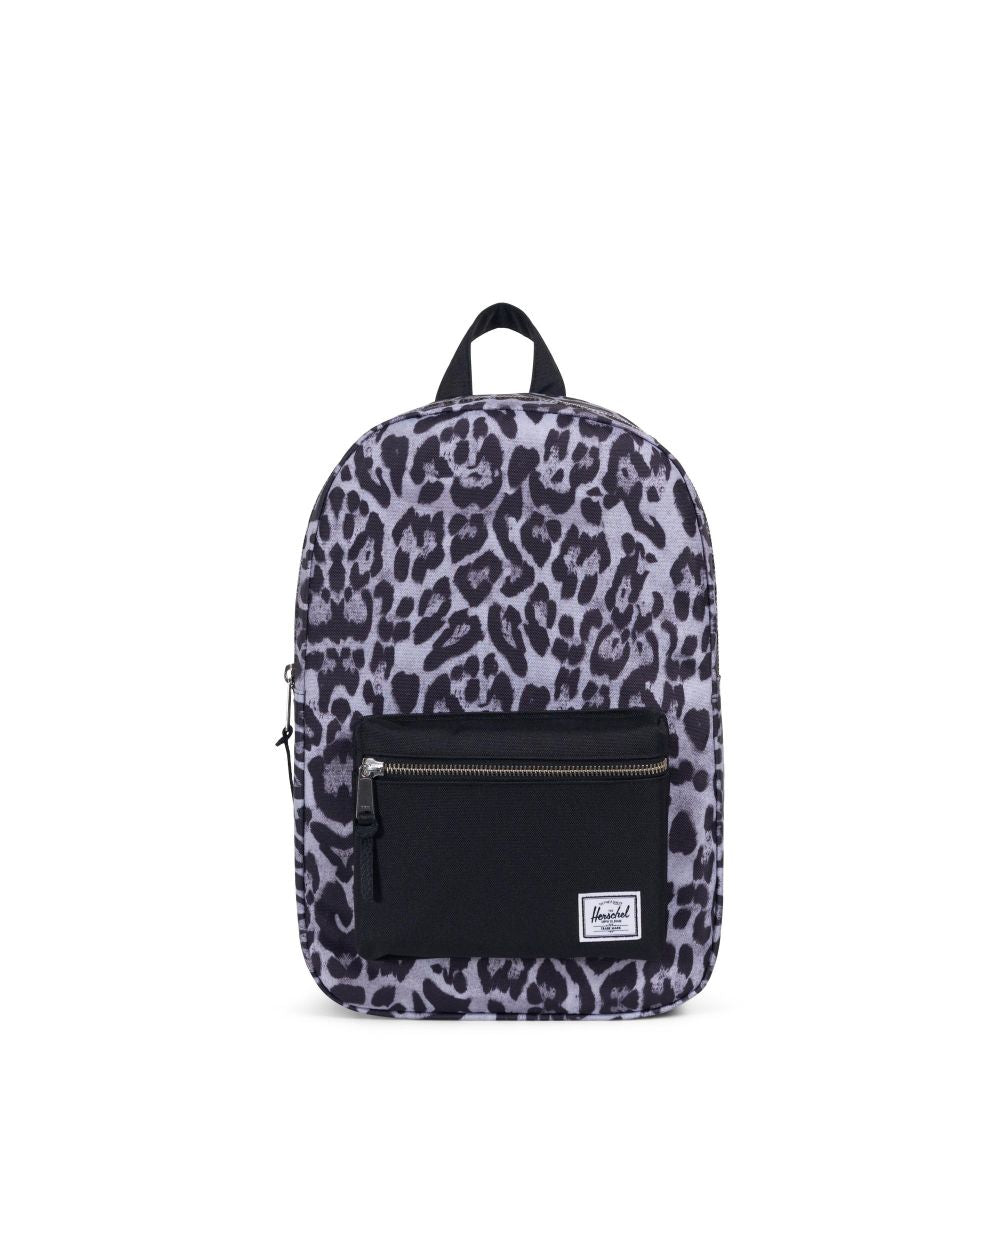 Herschel Supply Co. - Settlement Backpack, Snow Leopard/Black